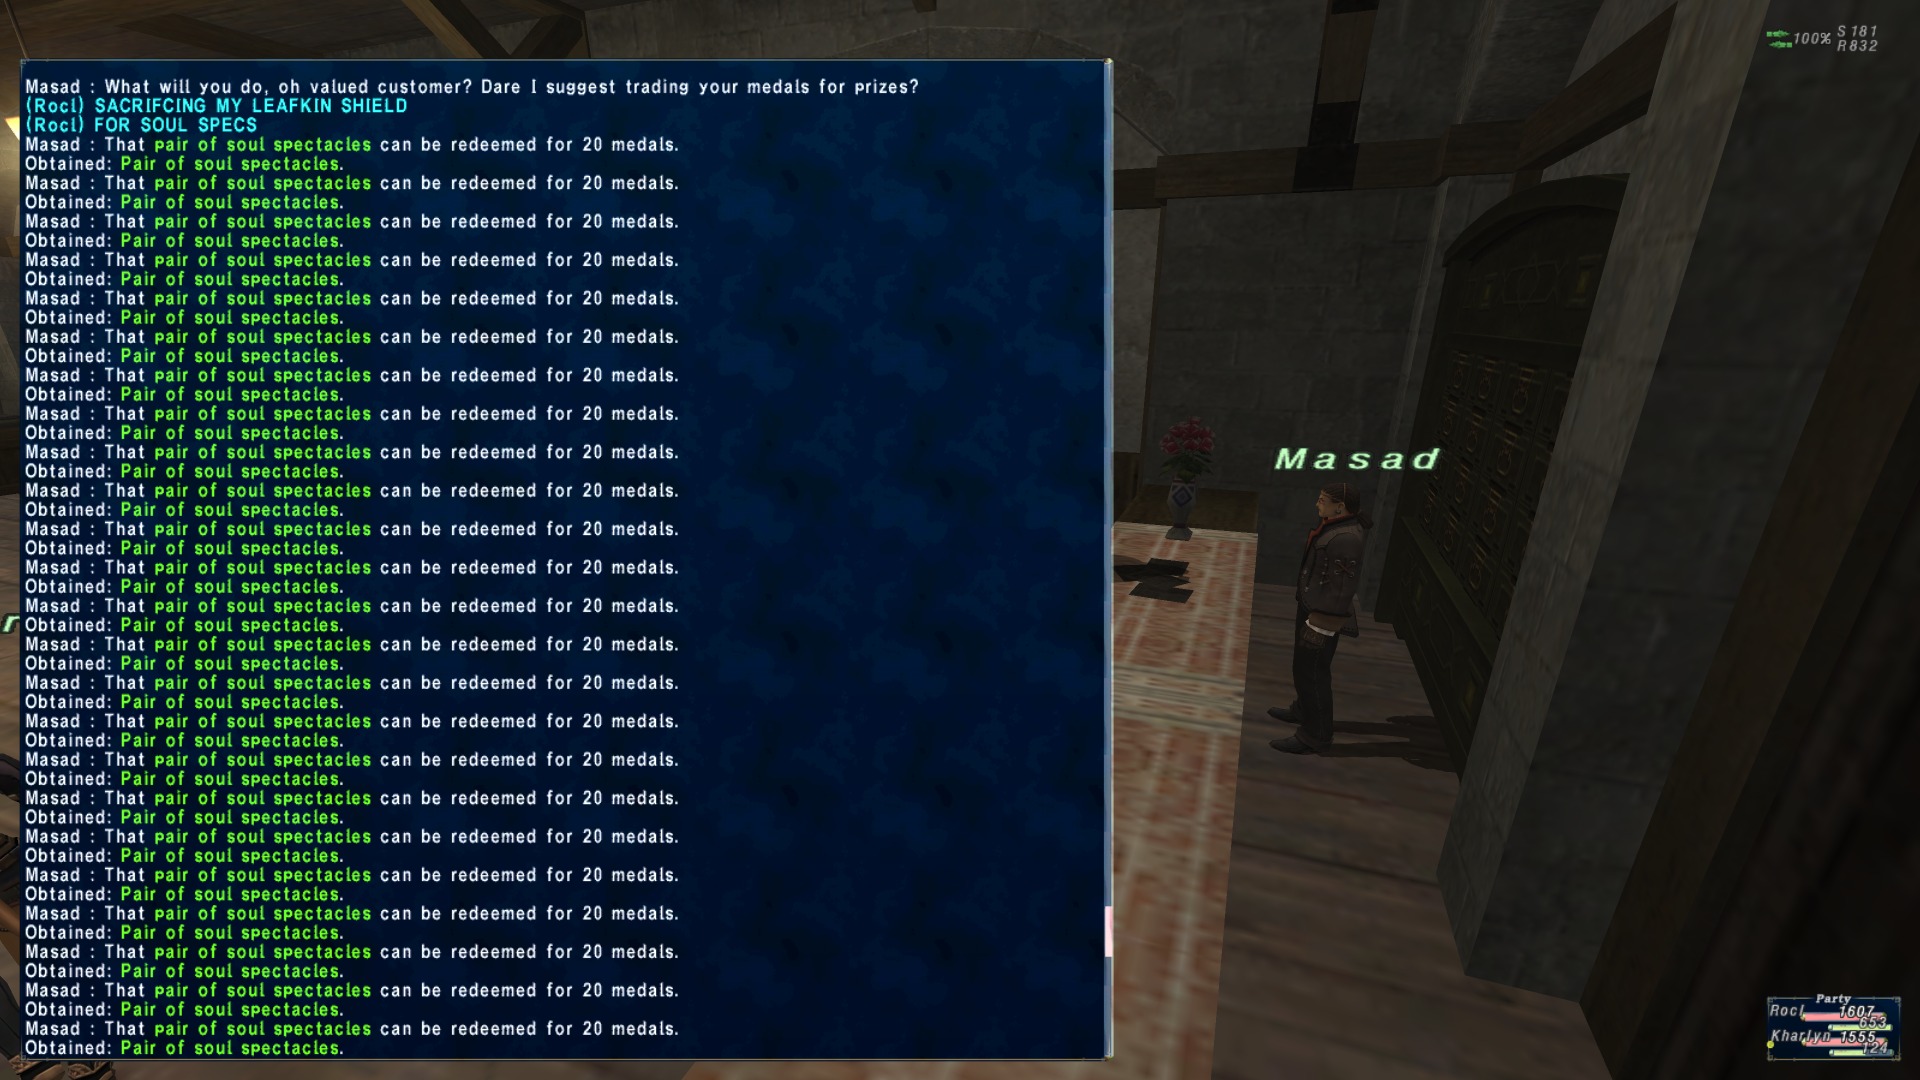 rocl ffxi thurandaut skadi1 with body ukuxkaj whirlpool manibozho iuitl other raider2 haste chocaliztli belt thaumas shneddick options head weapons twilight handslegsfeet following hands order mani much gear marches some buremte 4936 this delay raiders shift results around beat configurations from capped vary different subject leisilonu1 except finally configs include ionis middle